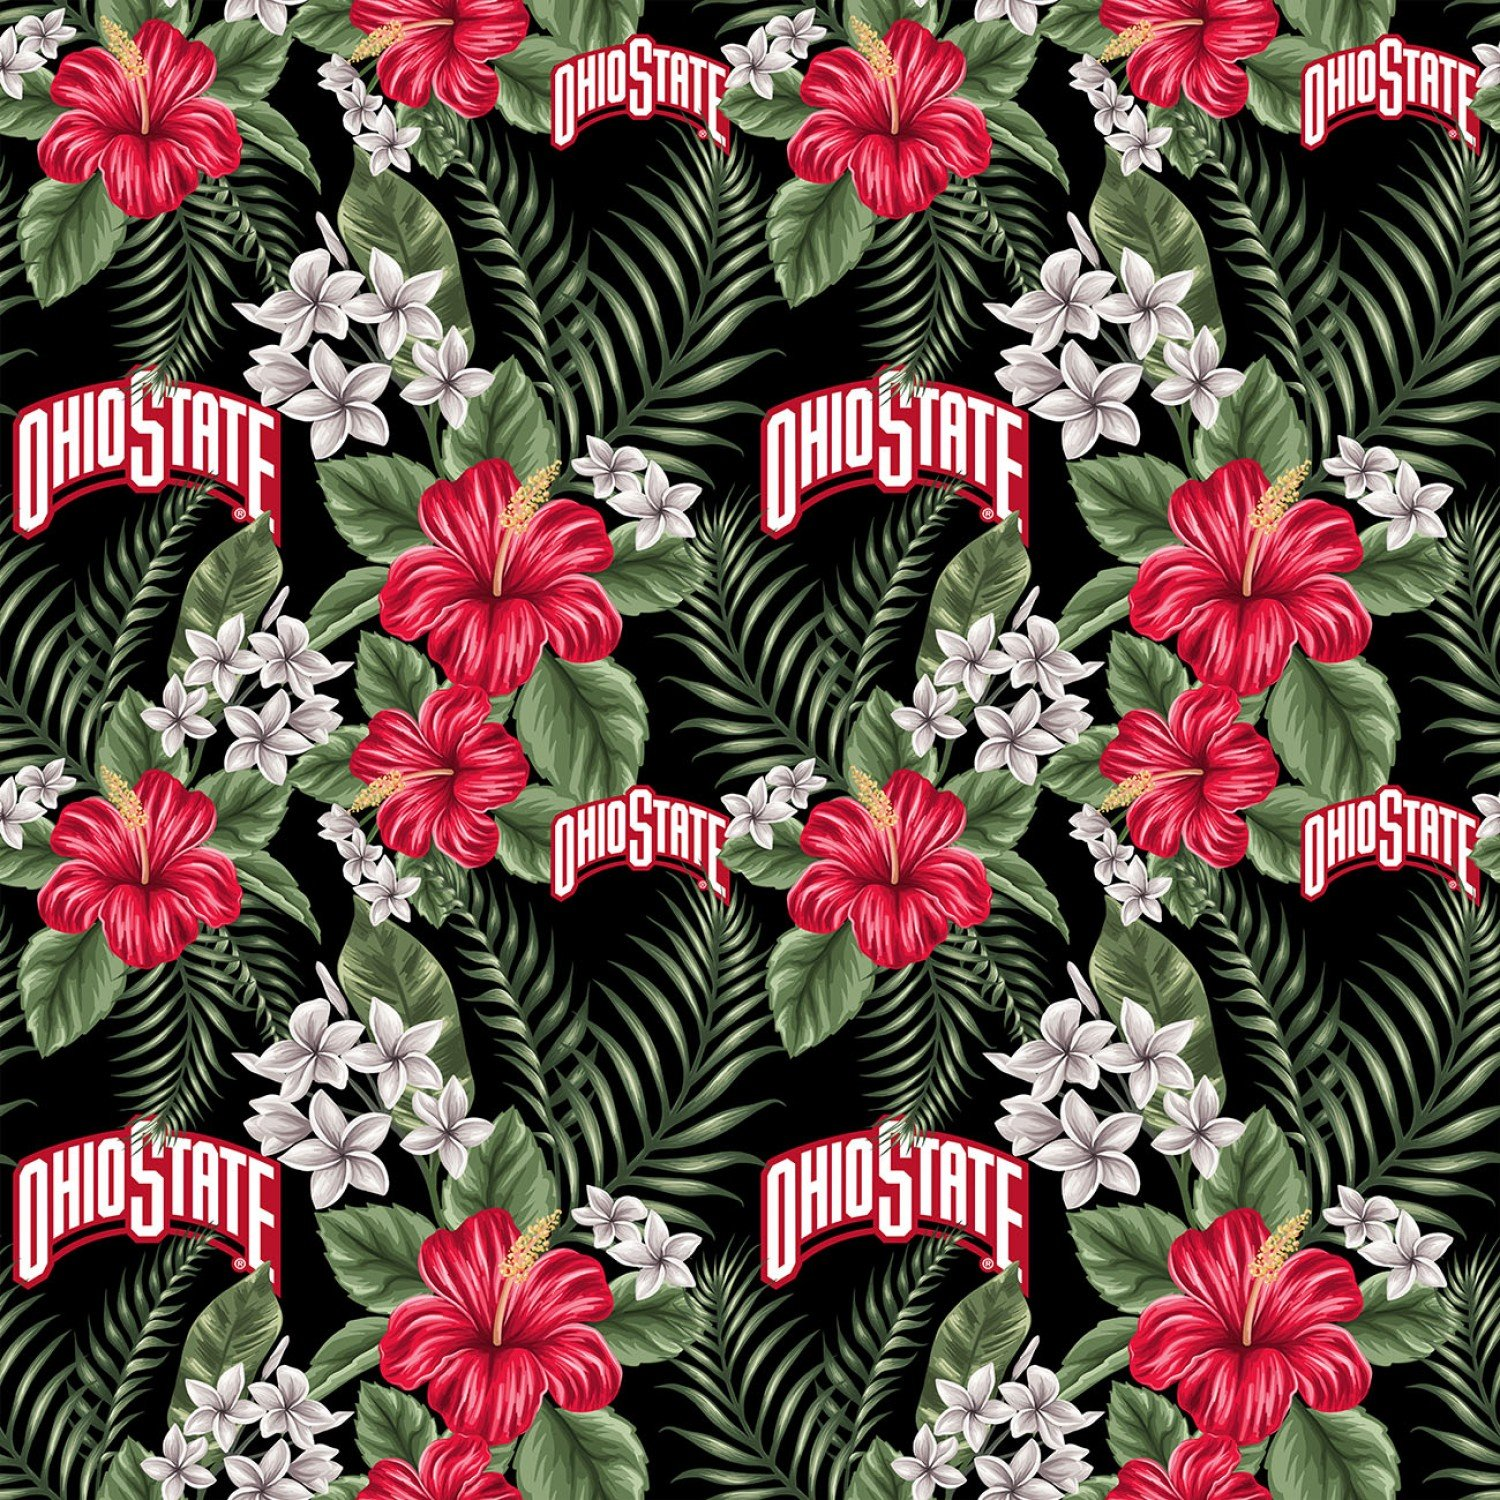 OHS-1174 Ohio State Buckeyes Palms Floral